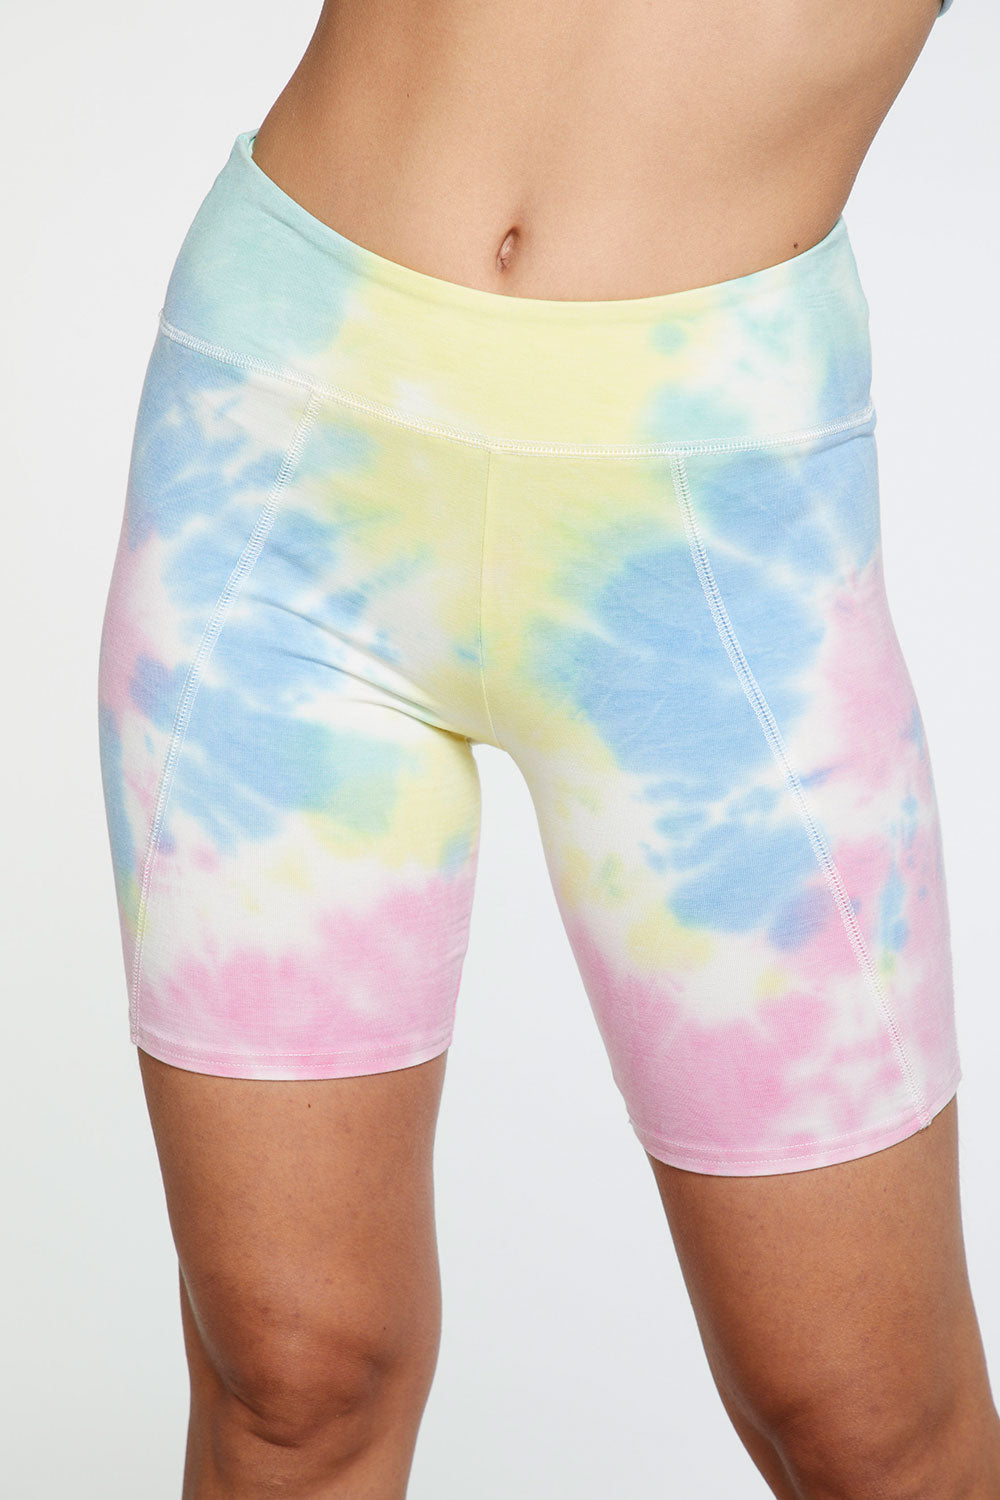 Quadrablend Seamed Bike Shorts in Tie Dye WOMENS chaserbrand4.myshopify.com